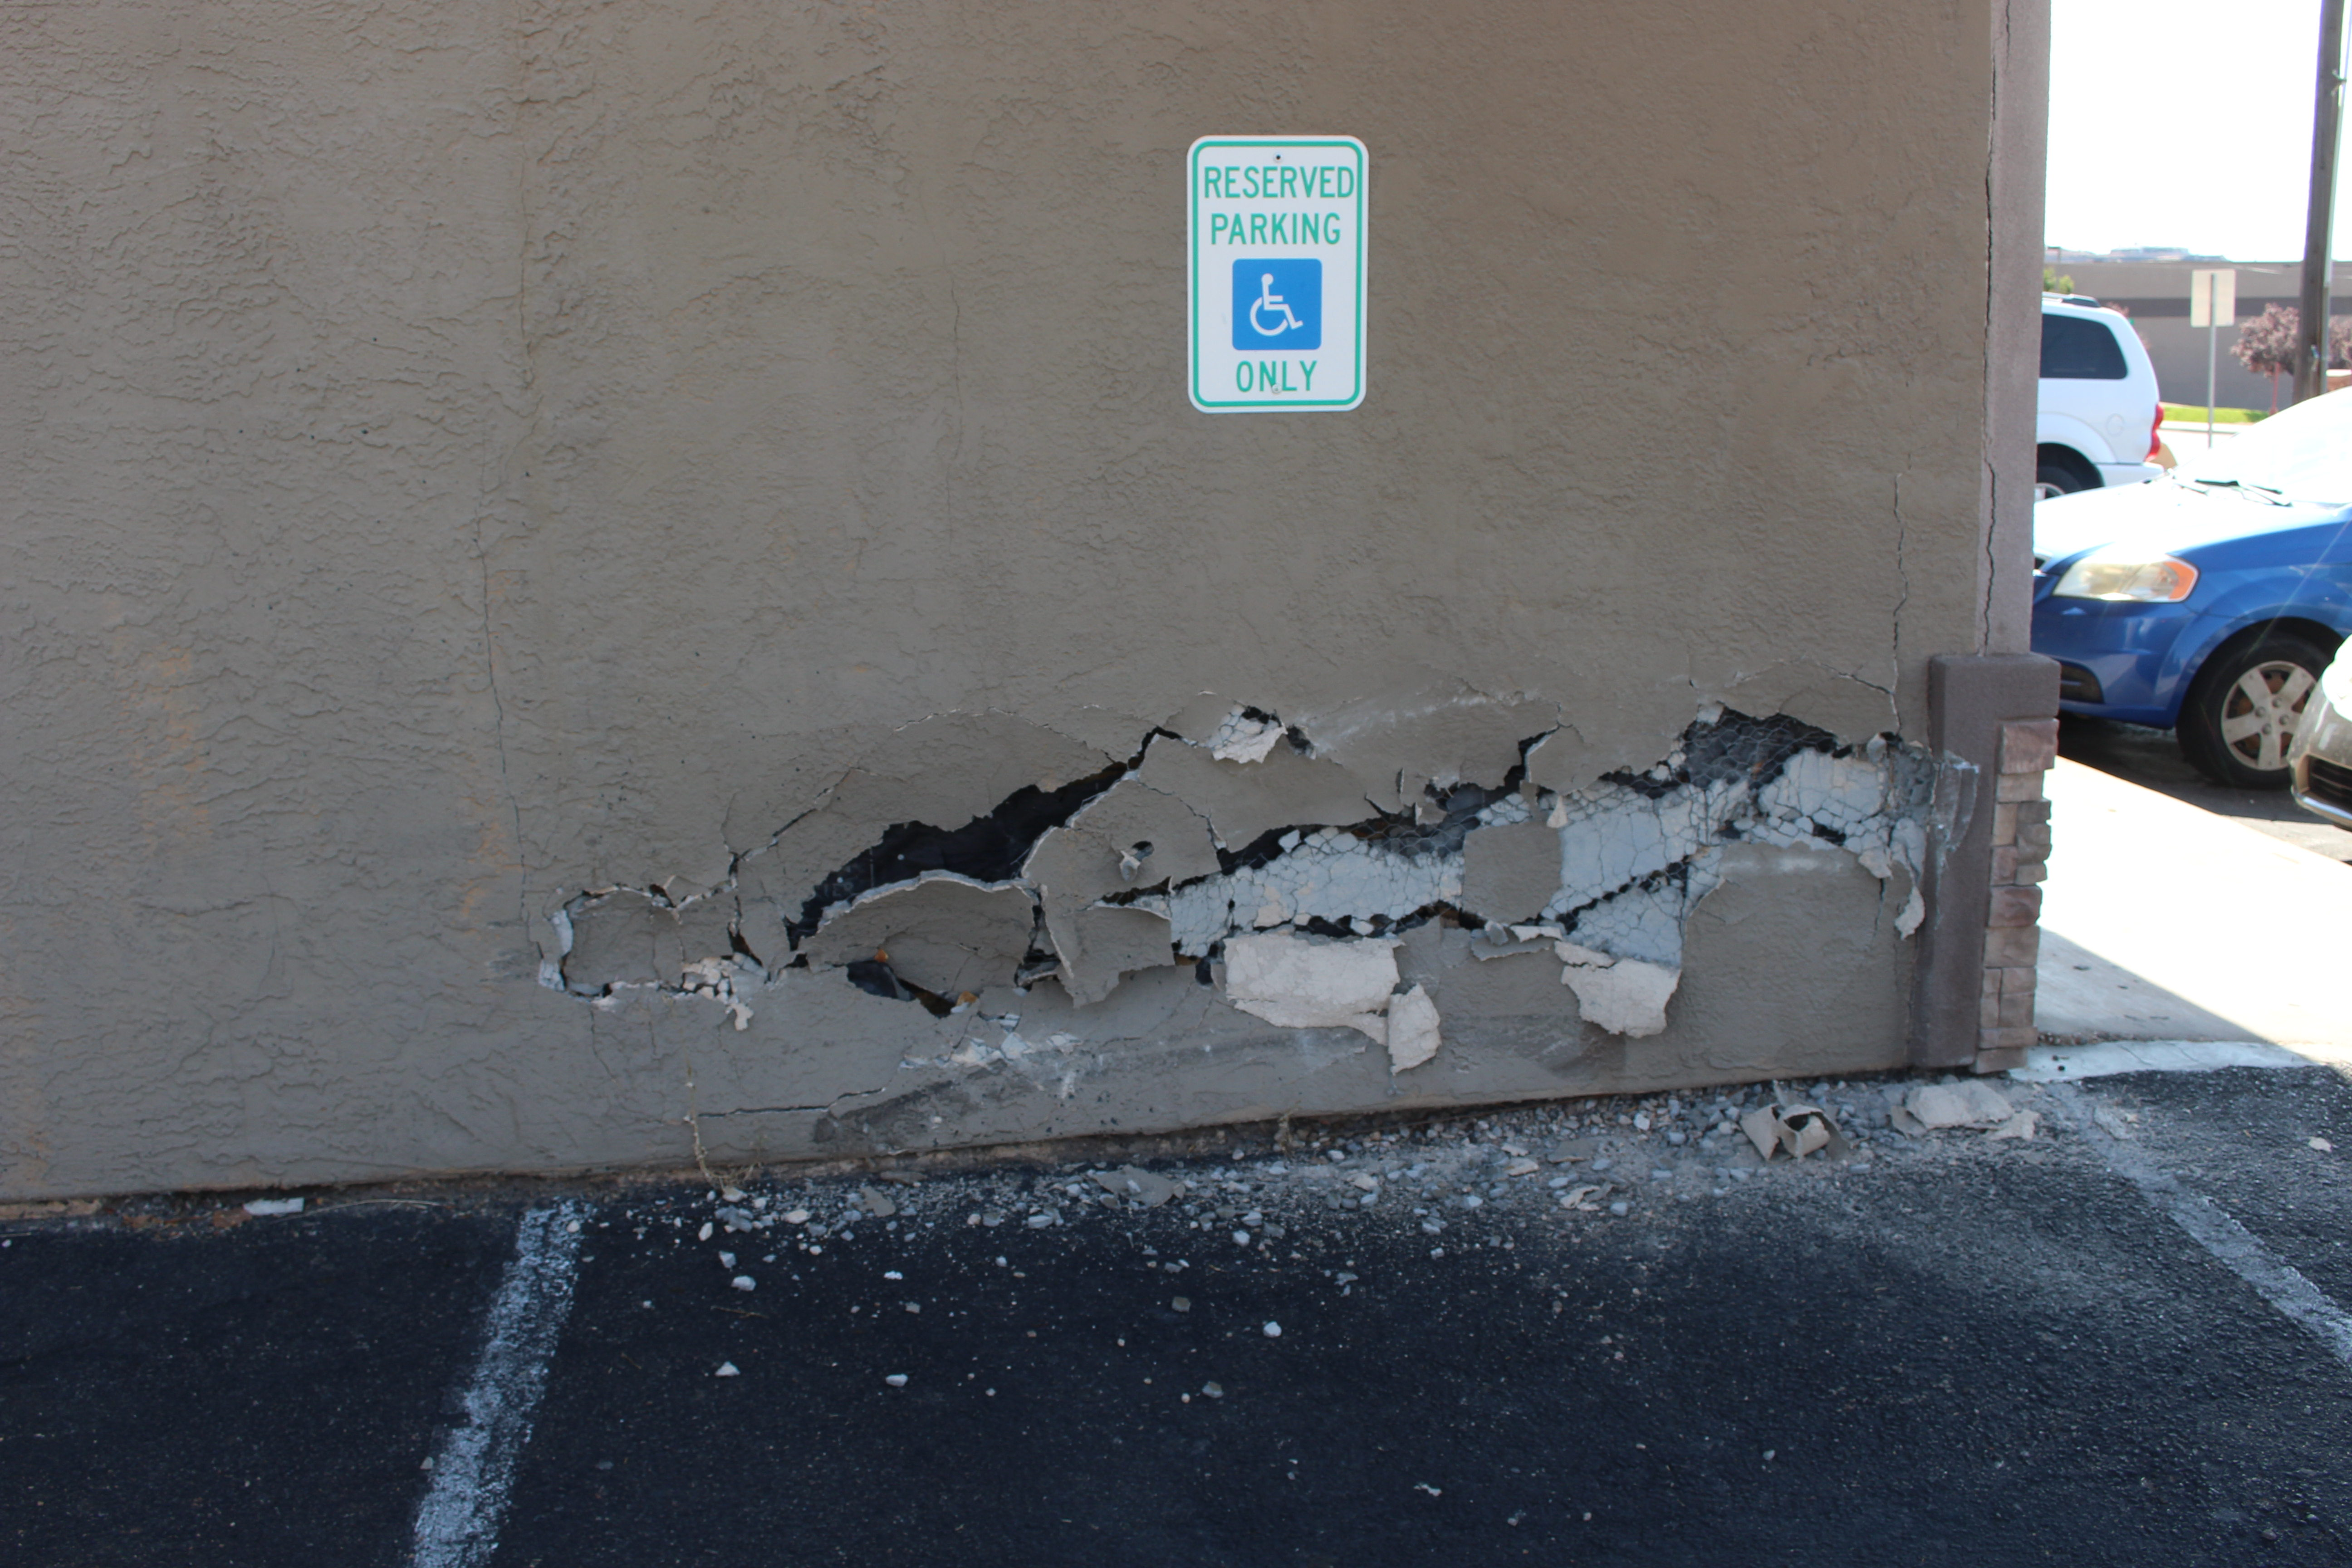 Evans Hairstyling College a toyota sits outside evans hairstyling college with front end damage after hitting the wall behind it and a parked pontiac monday The West Facing Wall At Evans Hairstyling College In St George After A Toyota Ran Into It Monday St George Utah Aug 7 2017 Photo By Ric Wayman